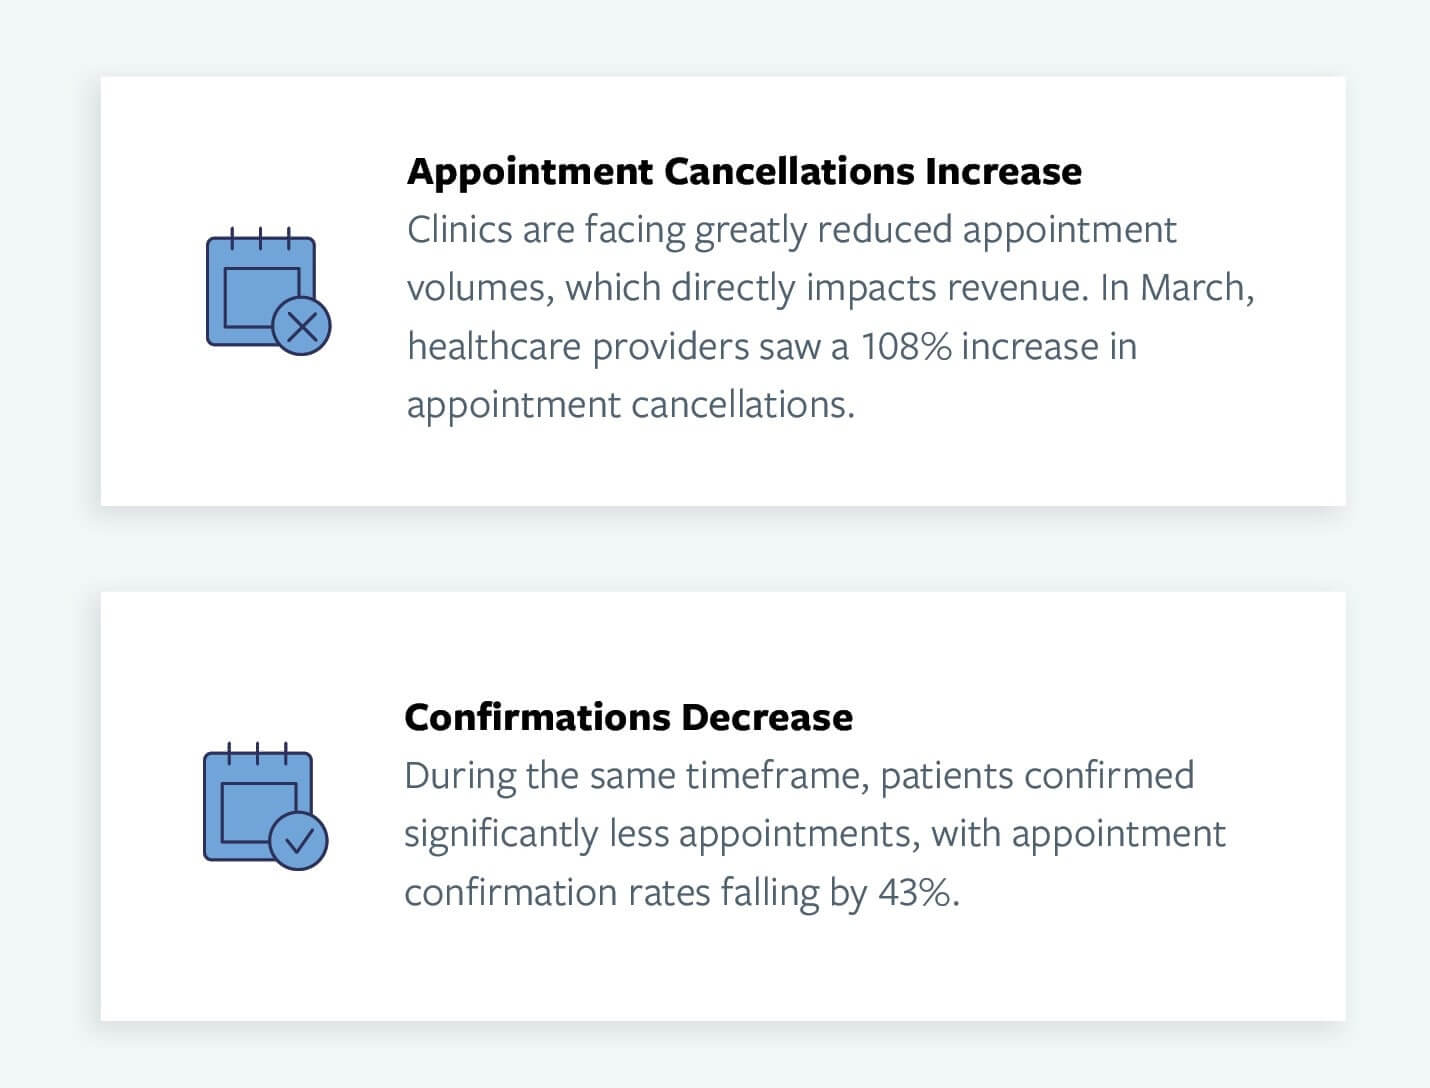 Appointment cancellation rates further support the need for text-first communication